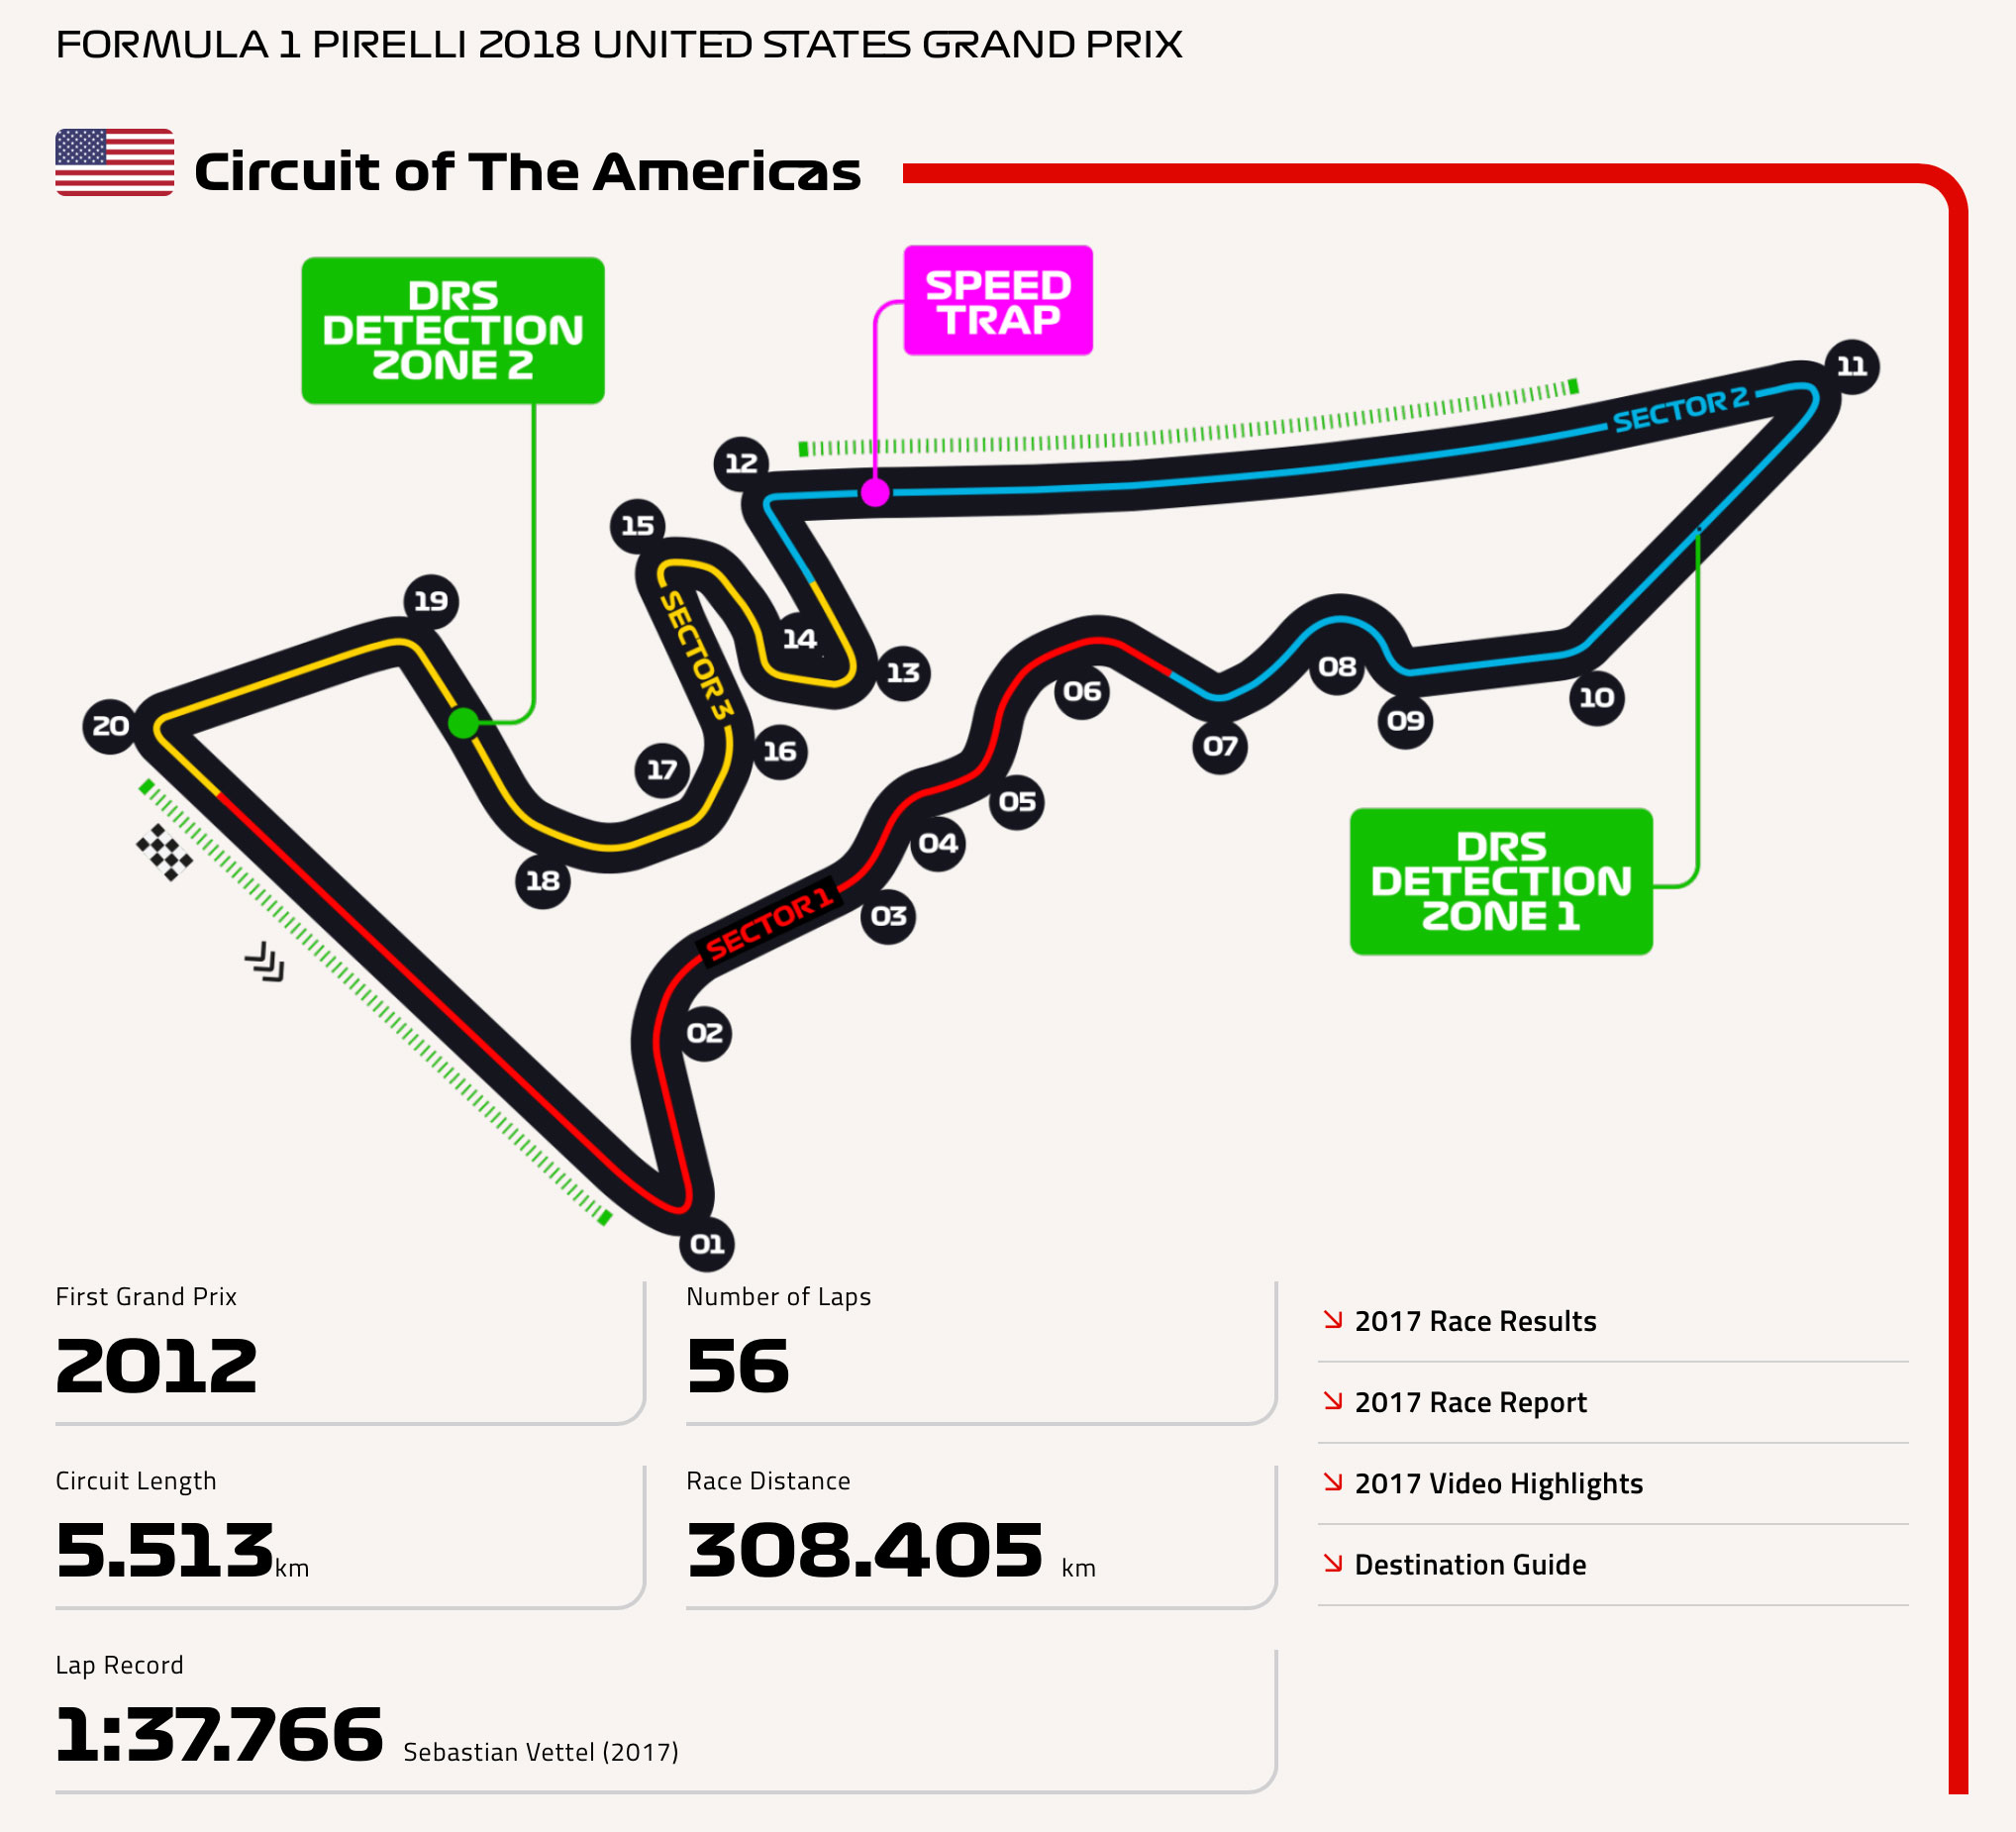 Welcome To Home Of Jakes Rolex World Magazine Formula 1 Circuit Diagrams The 2018 Pirelli United State Grand Prix Runs Begins On October 19th With Practice Laps And Saturday 20th Qualifying Occurs Then Race Is